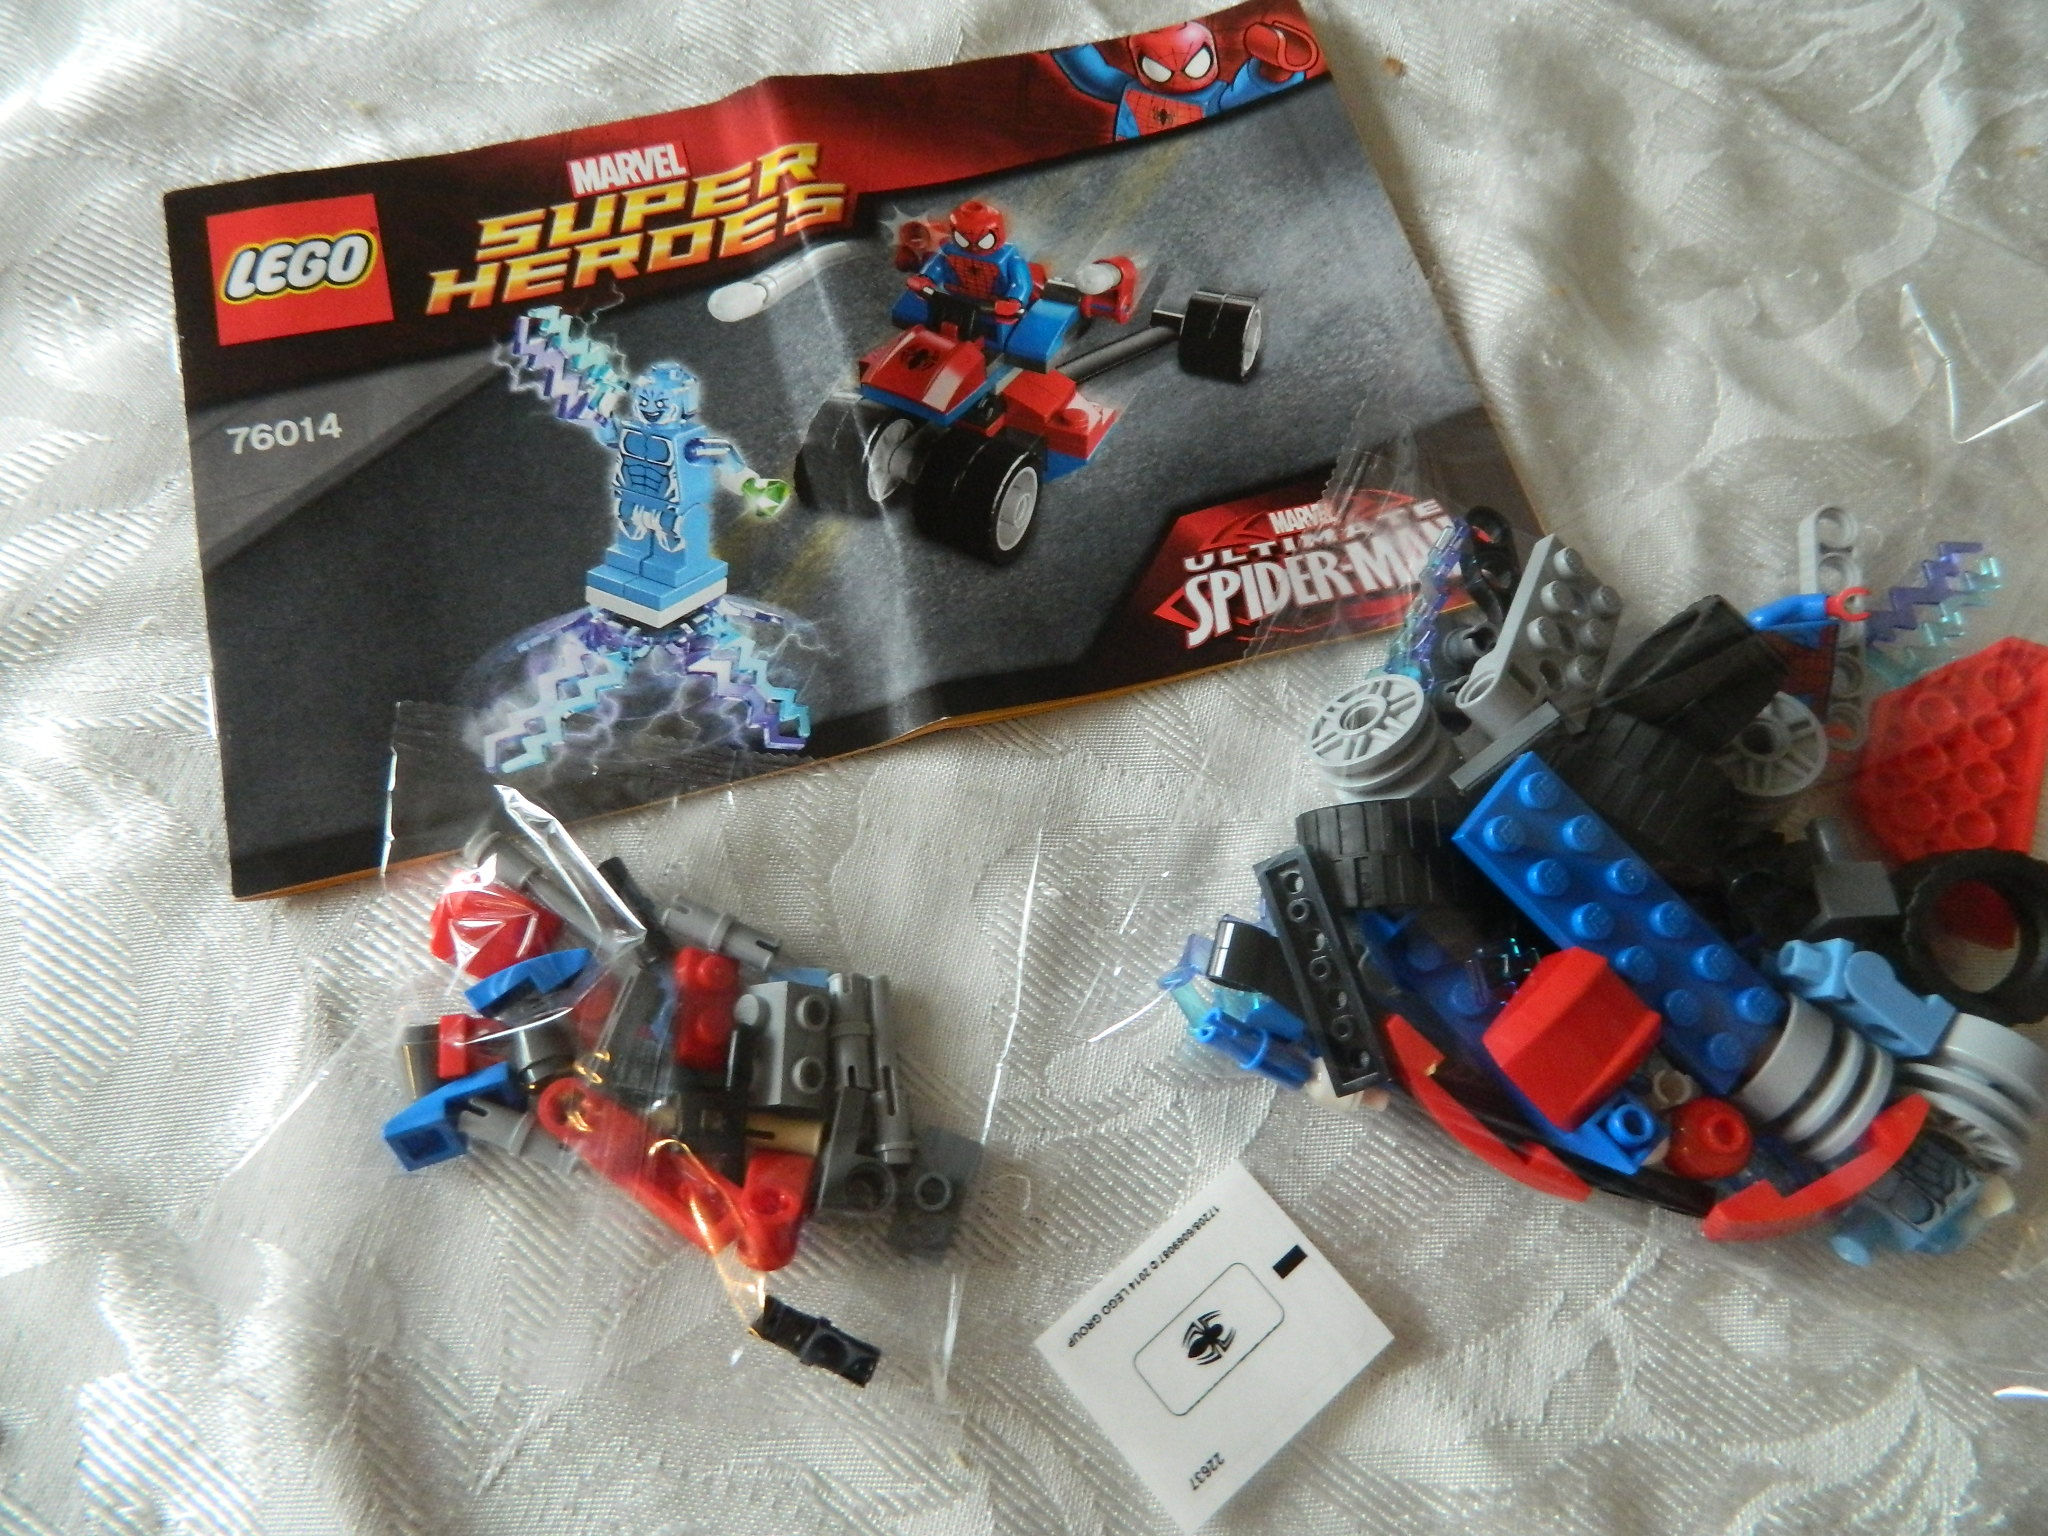 Lego marvel super heroes ultimate spider man - Lego the amazing spider man 3 ...